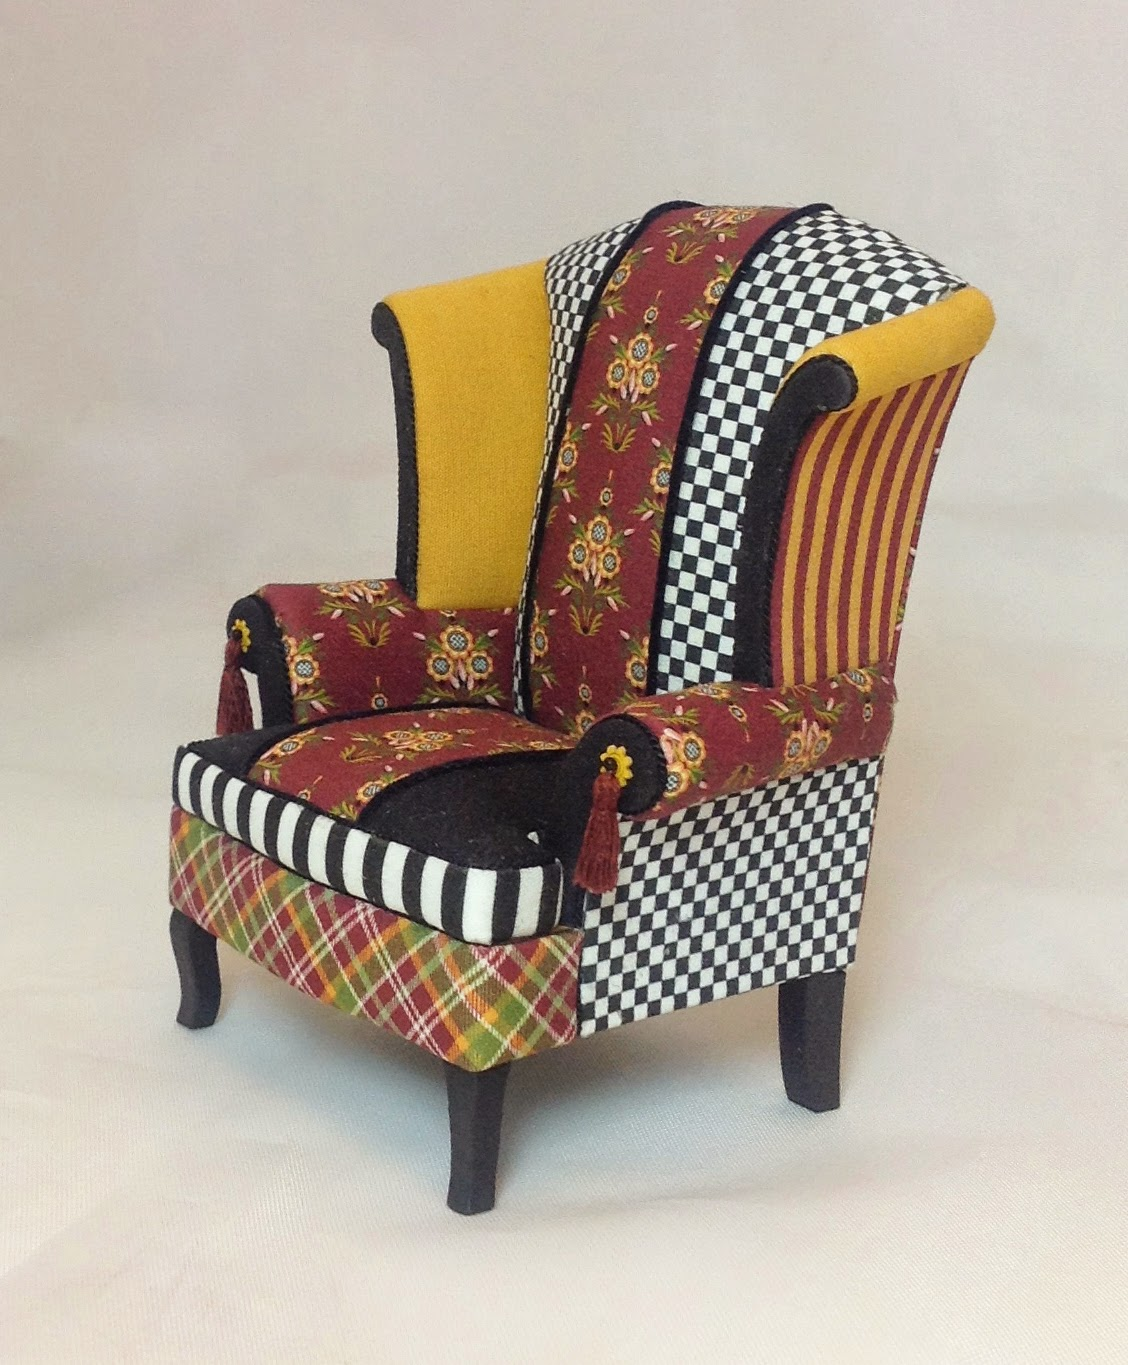 Upholstered wing chairs - Saturday May 10 2014